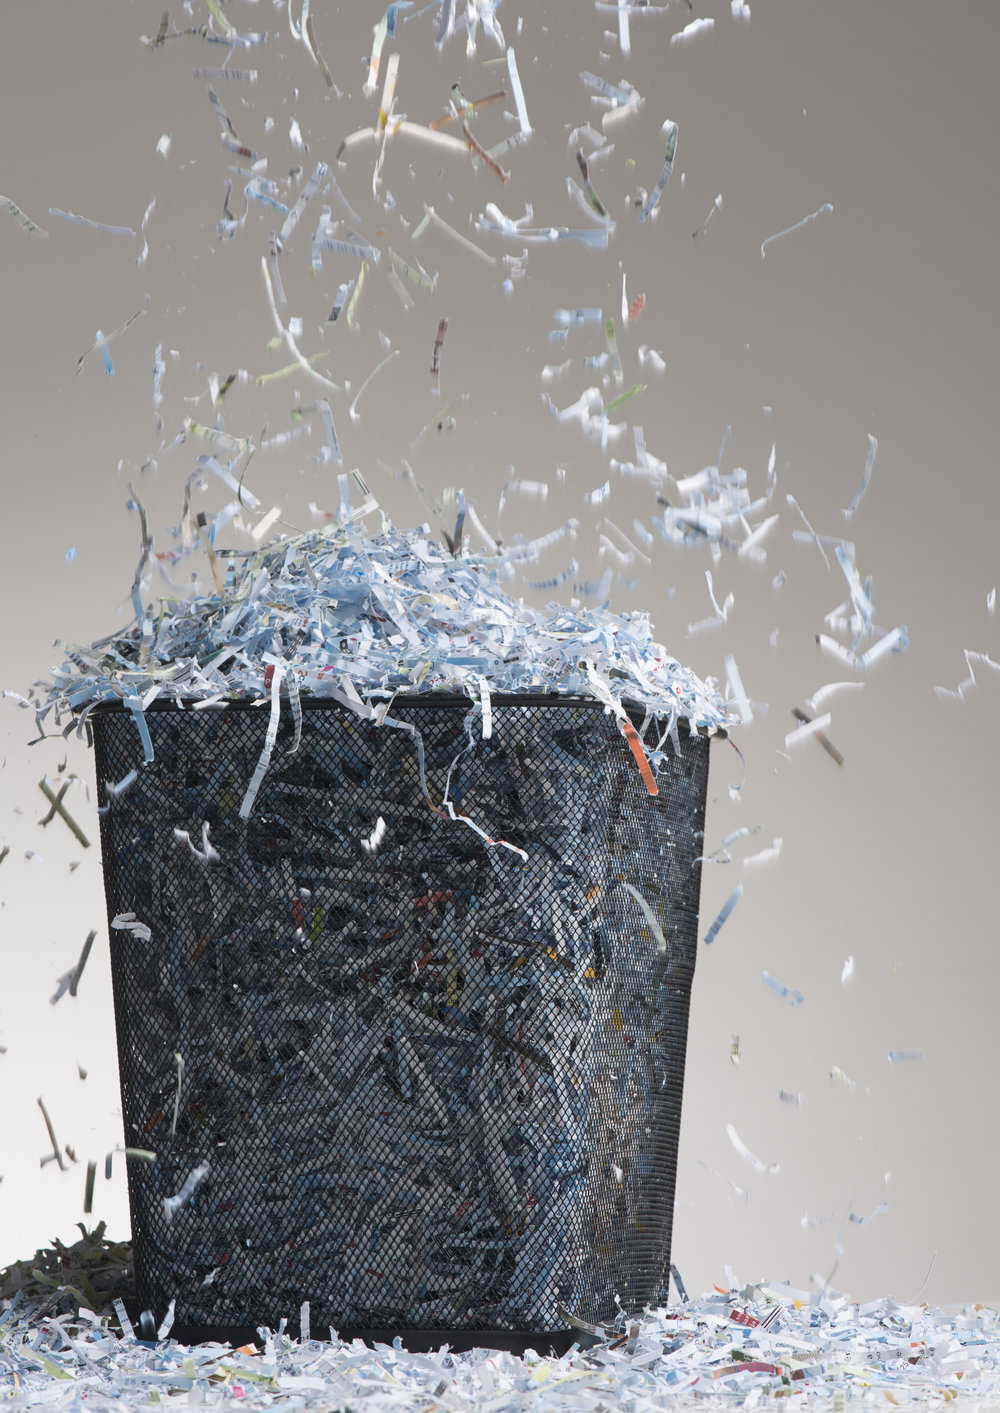 SHREDDING SERVICES - Now that you've met your retention obligations,what are you supposed to do with hundreds, or even thousands, of pounds of paper documents full of sensitive personal, corporate, or government information? Just call or send us an email! If we're already storing the documents, our bar-code technology eliminates accidental disposal and makes it easy for us to identify and destroy only the items you tell us to. On a more personal note, if you have a box of old documents next to your shredder, but you just don't have the time; call us and we'll bring you a secure bin that can be filled and retrieved for destruction at your convenience.